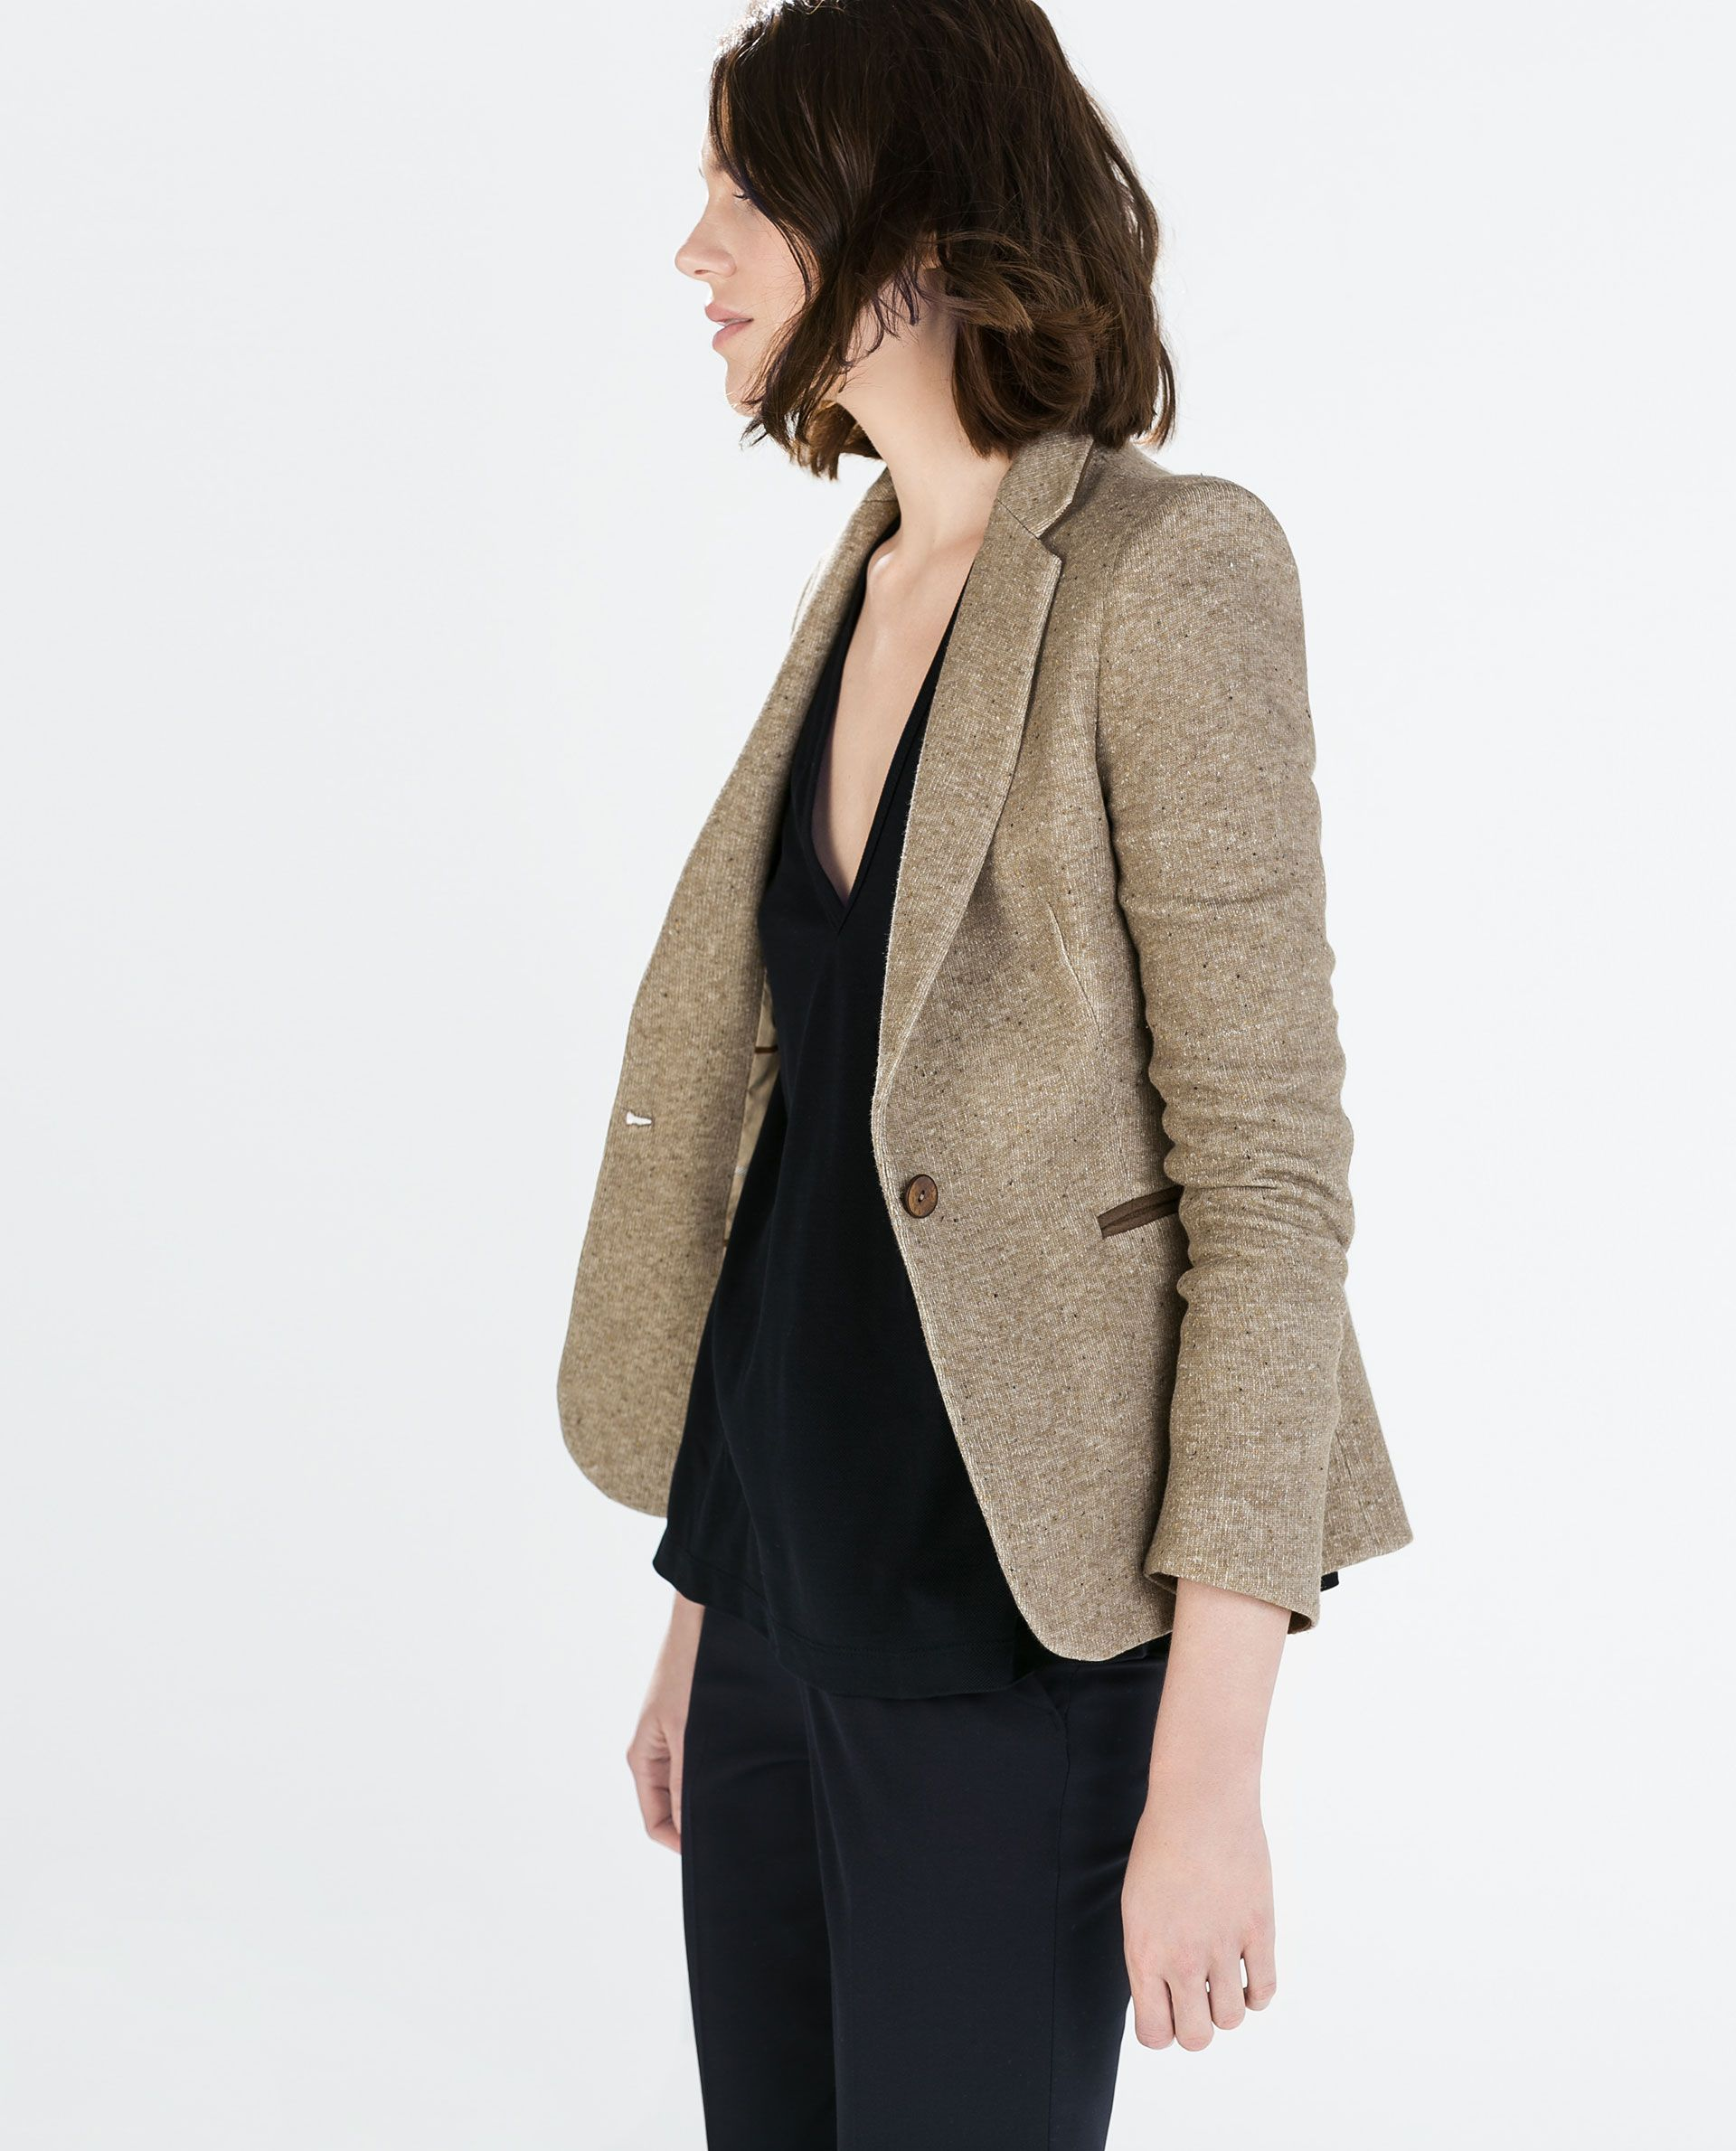 image 4 of blazer with elbow patches from zara want pinterest. Black Bedroom Furniture Sets. Home Design Ideas